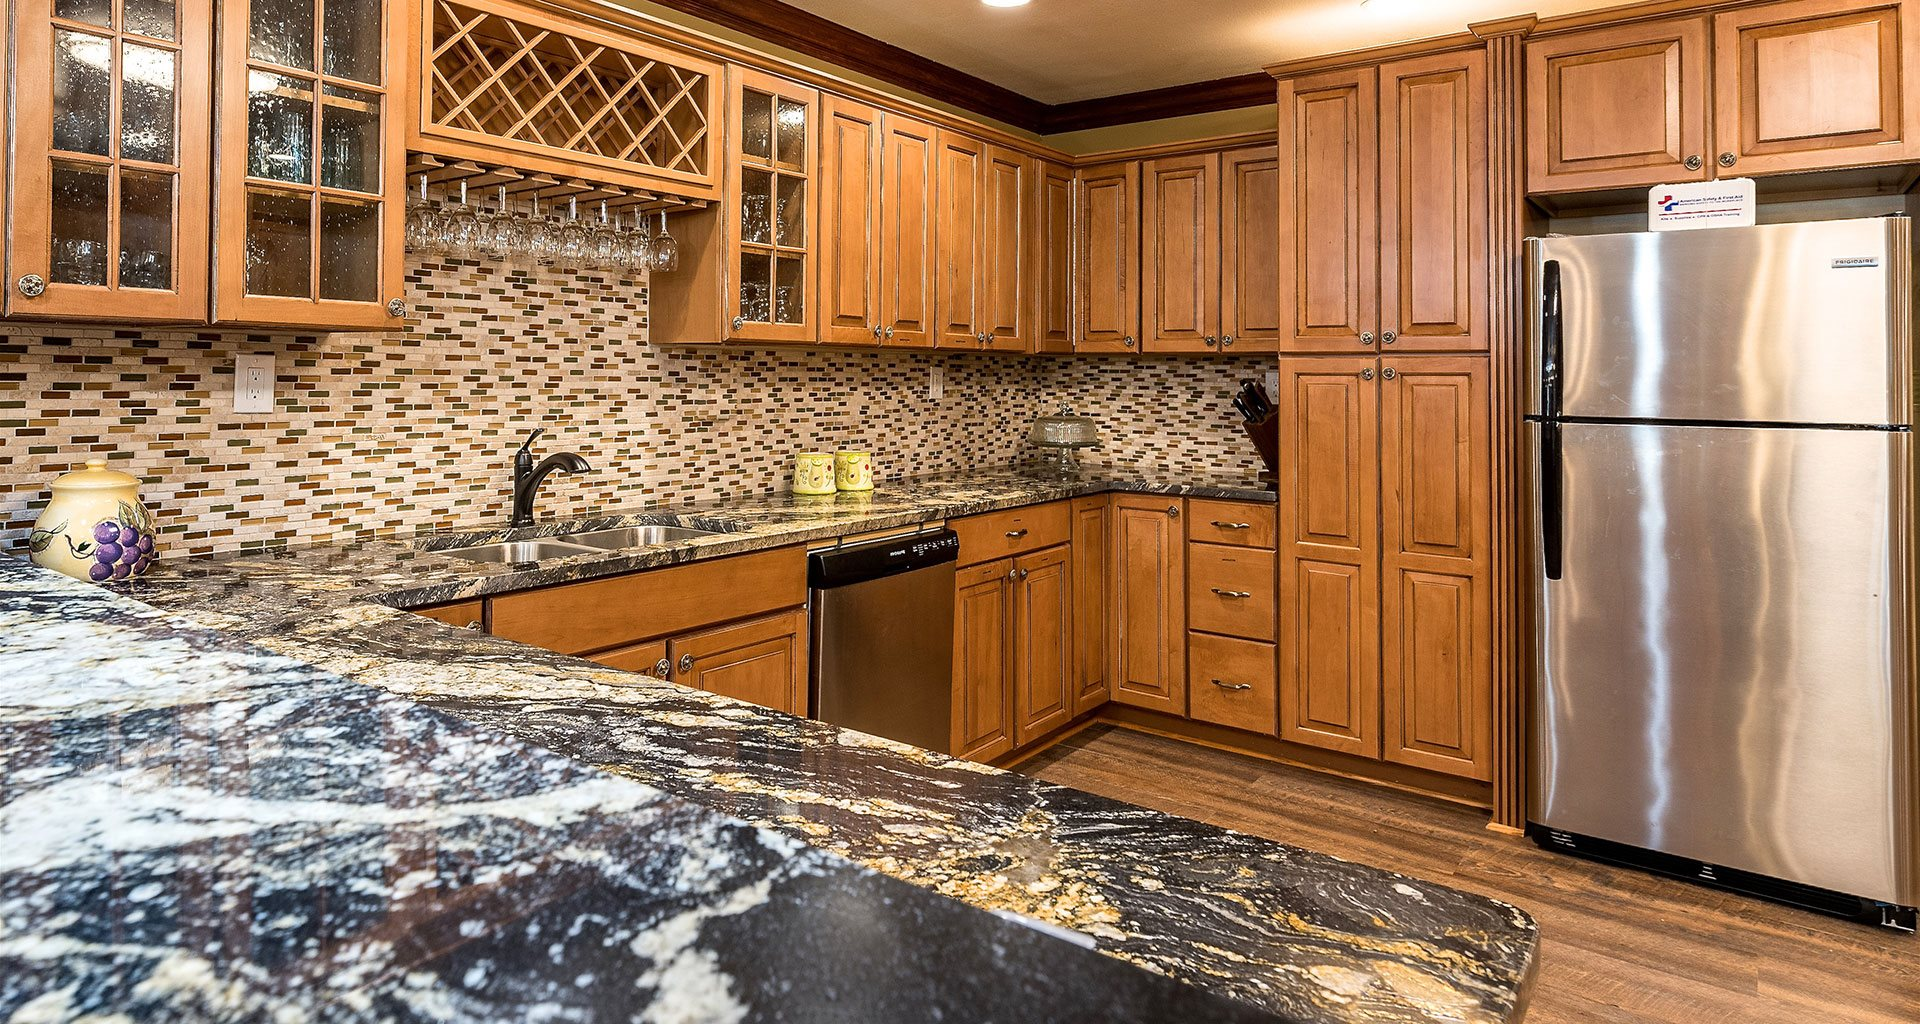 Modern Kitchen With Wood Cabinet at Pacifica Senior Living Heritage Hills, Hendersonville